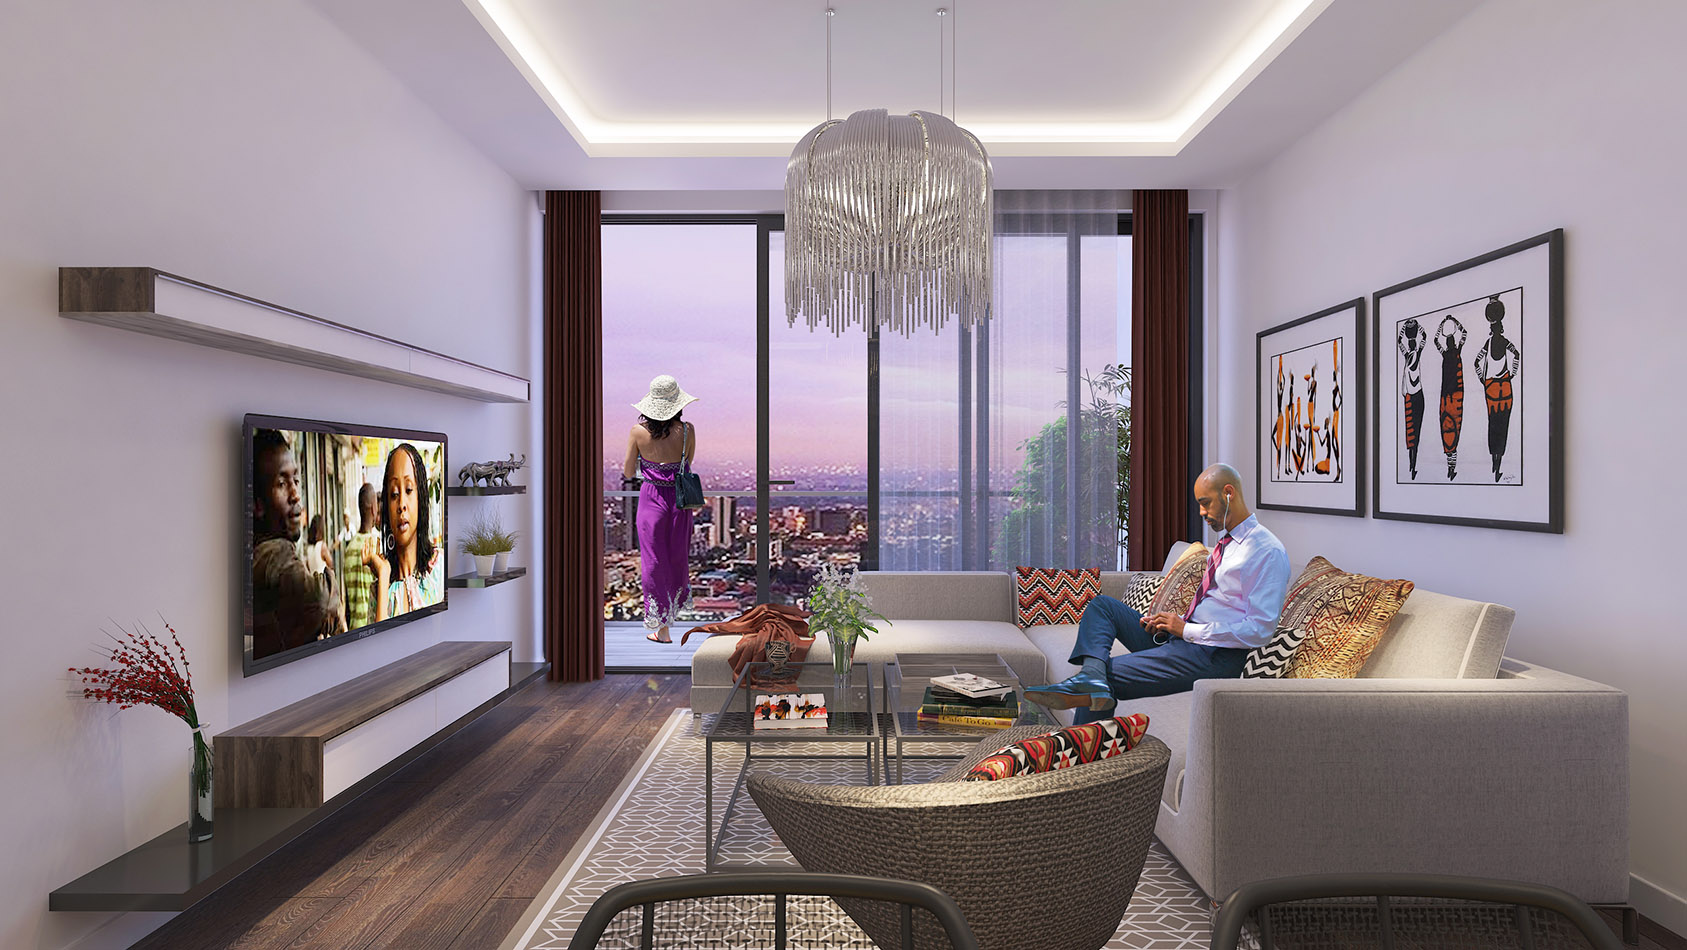 Rental unit in Nairobi's tallest tower will set you back Sh480,000